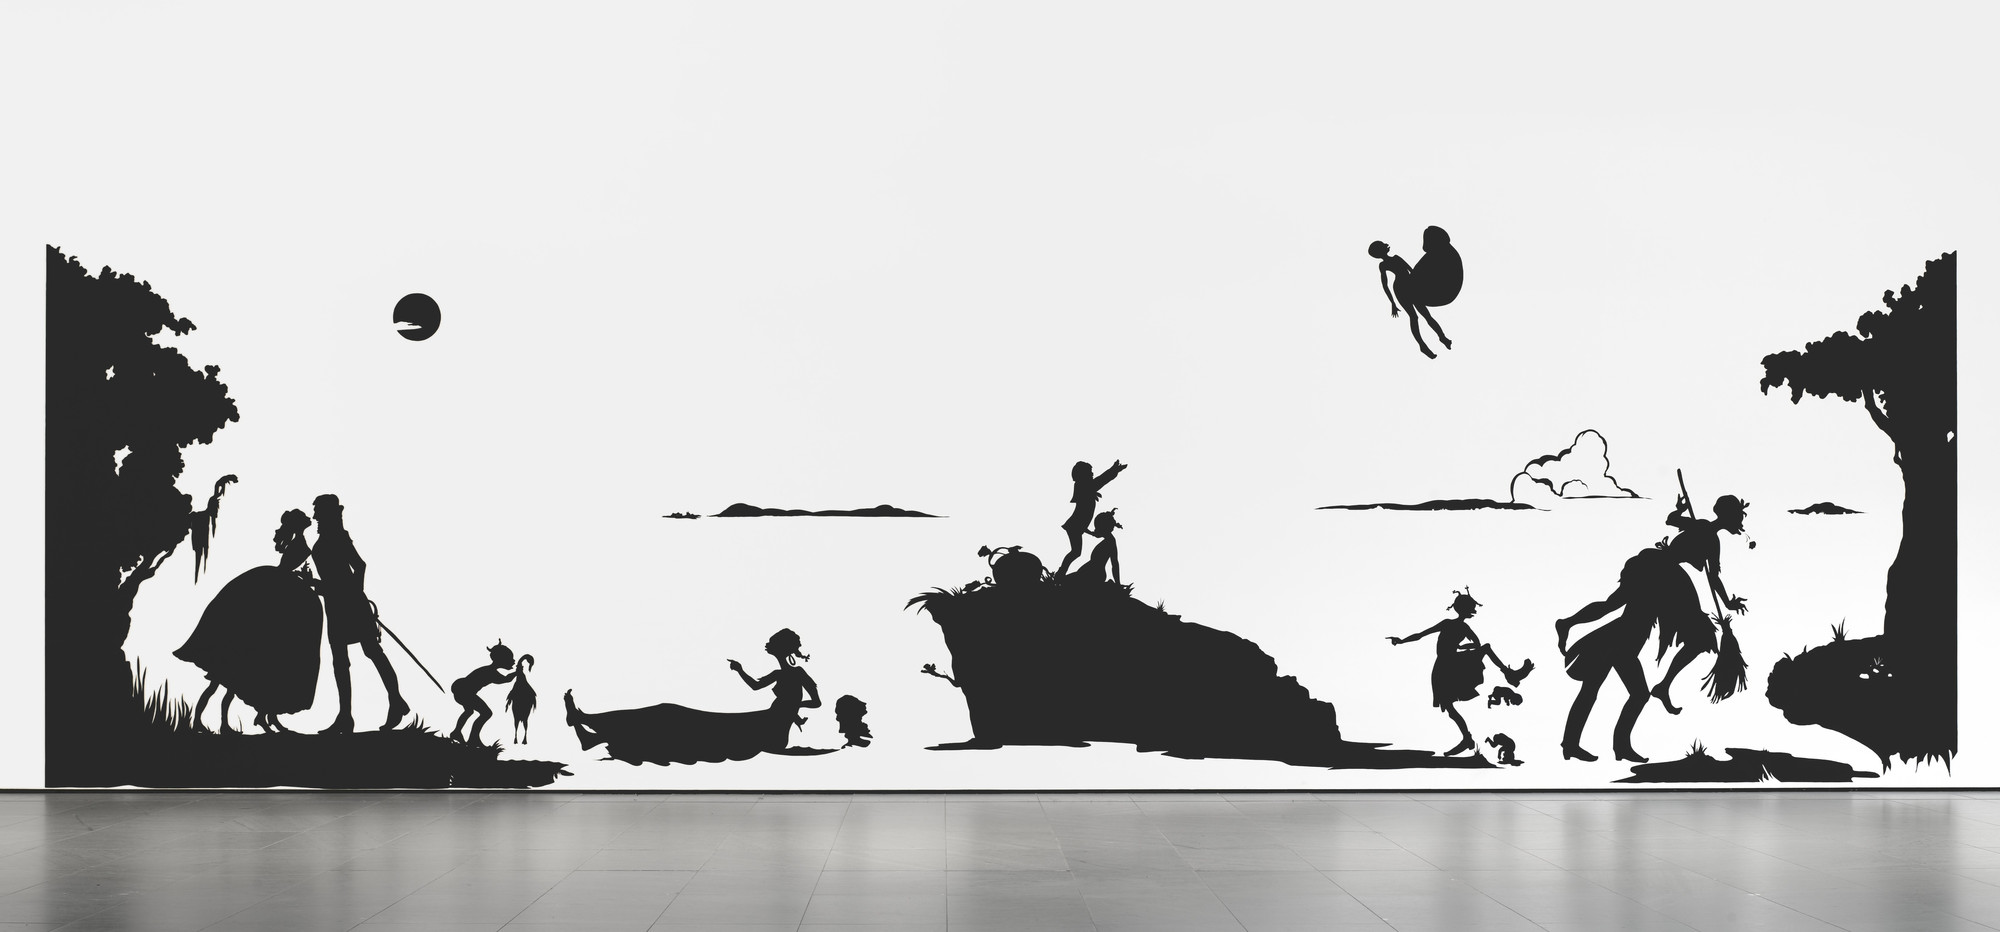 Kara Walker. Gone: An Historical Romance of a Civil War as It Occurred b'tween the Dusky Thighs of One Young Negress and Her Heart. 1994